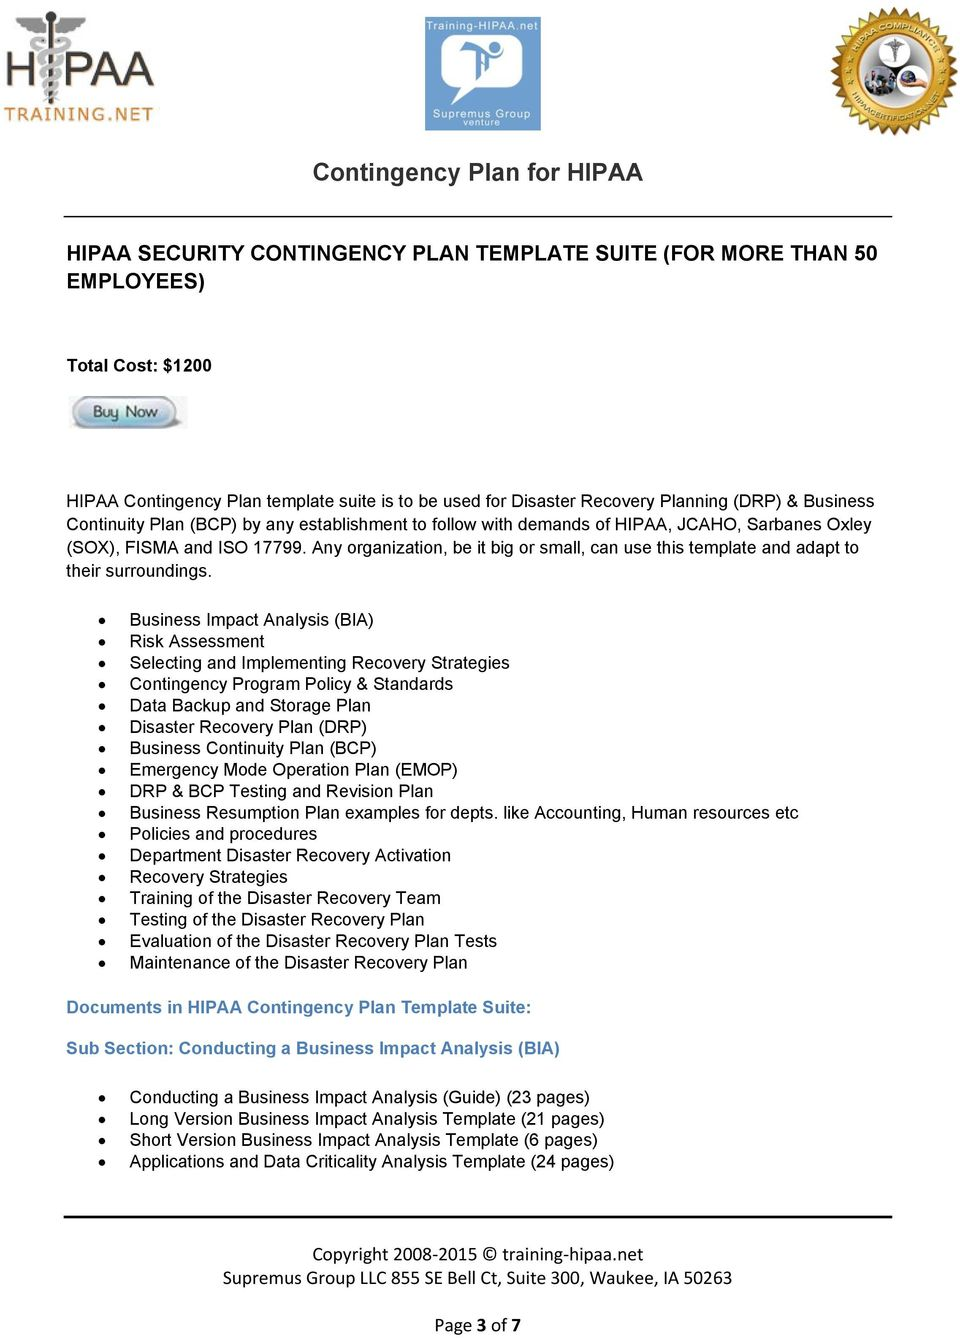 Contingency Plan For Hipaa Pdf Free Download